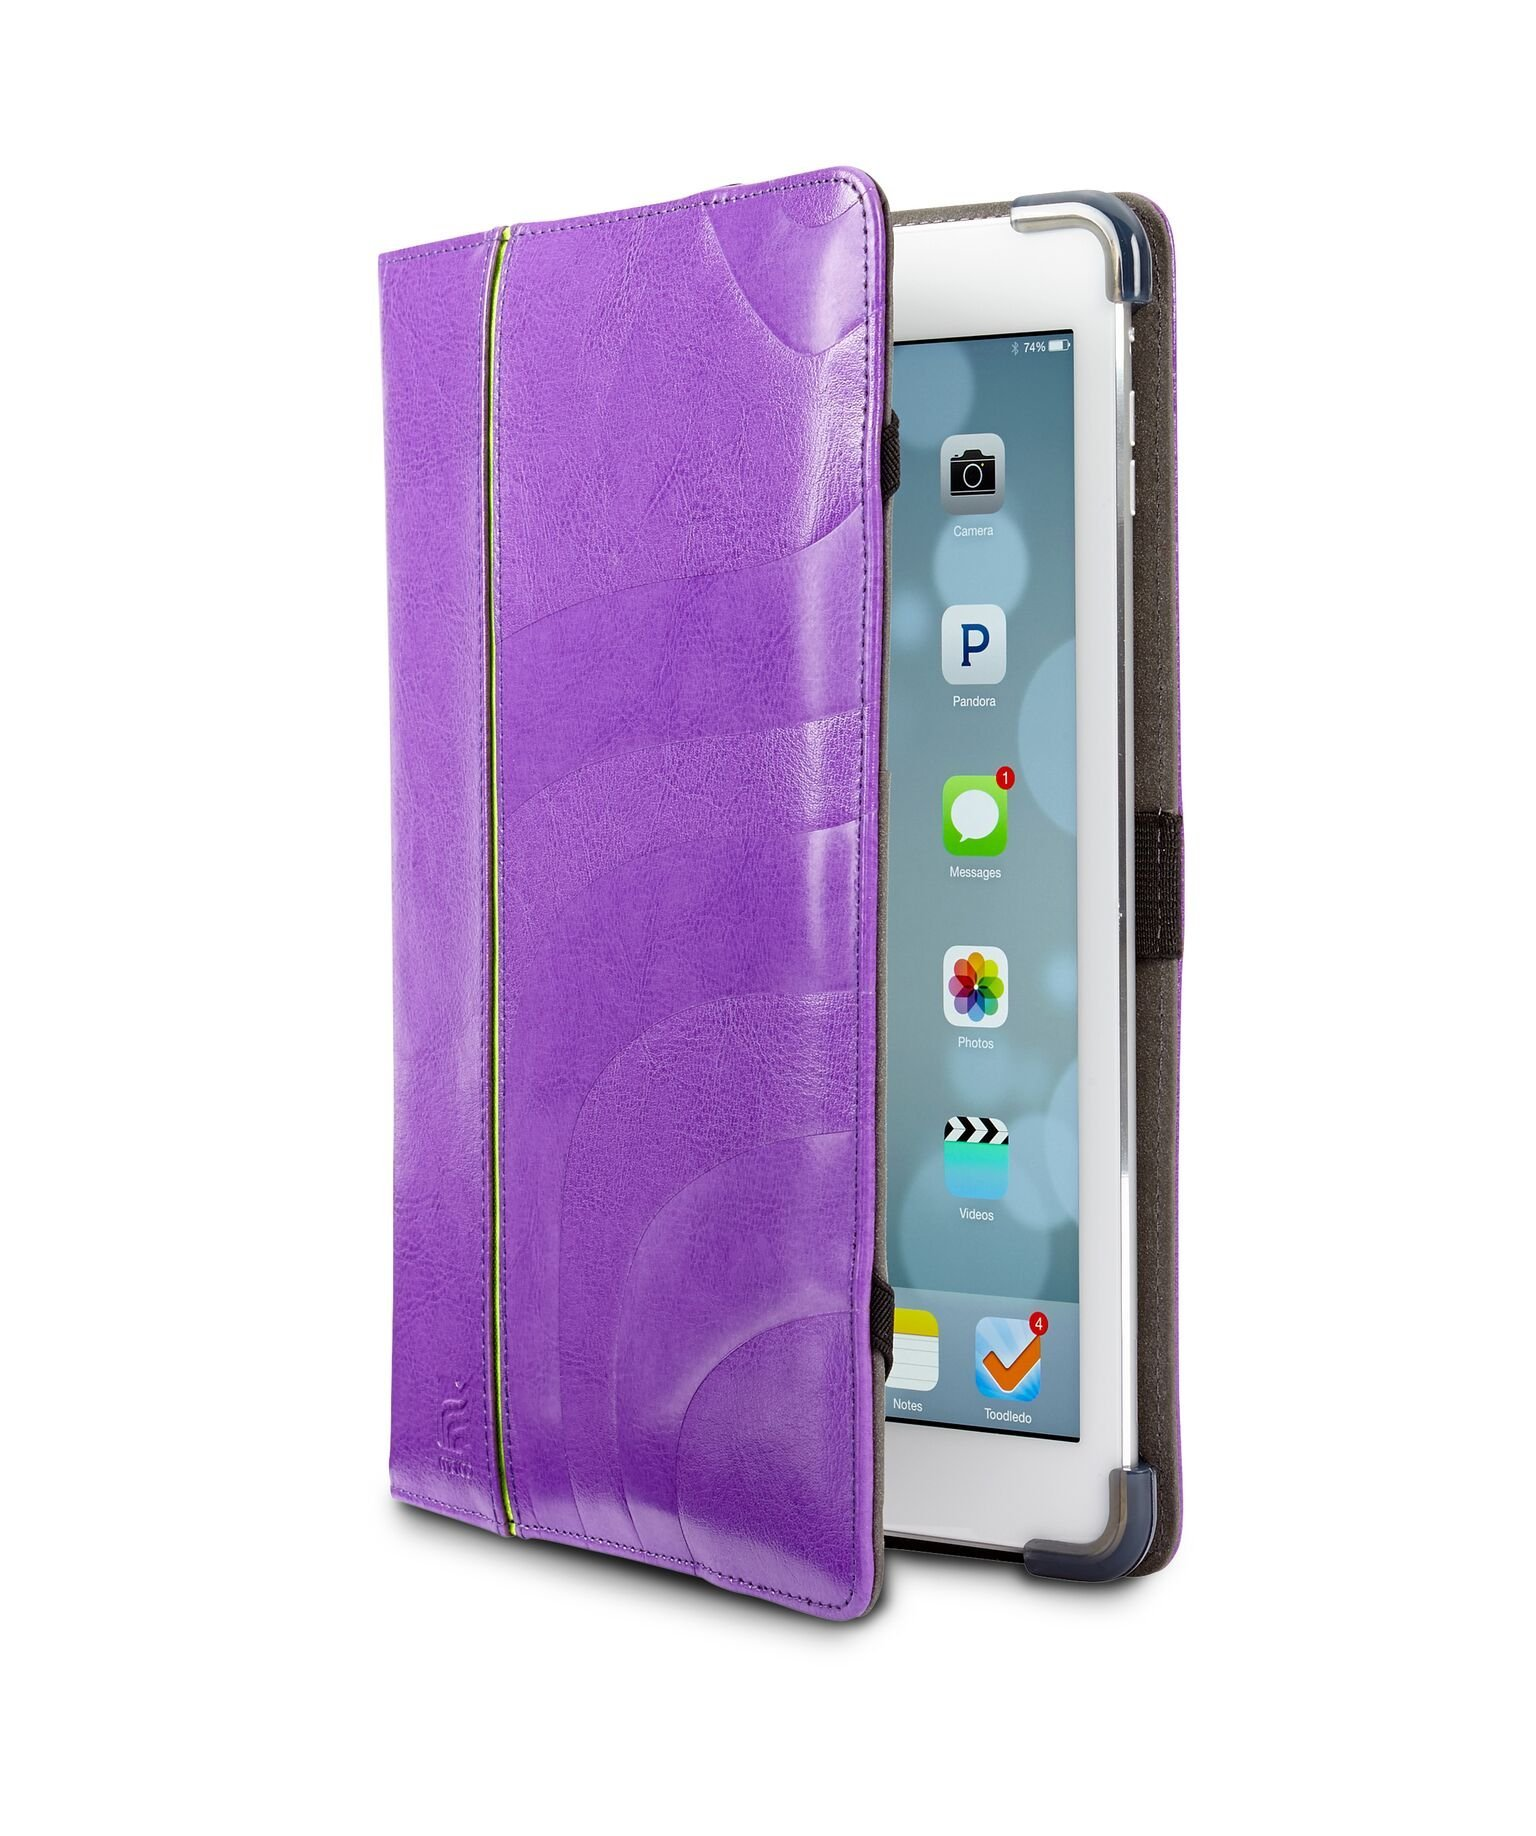 Maroo iPad Air Case - Vibrant Purple Leather Folio with a Foldable Front Cover for Typing and Viewing Angle, Elastic Hand Strap